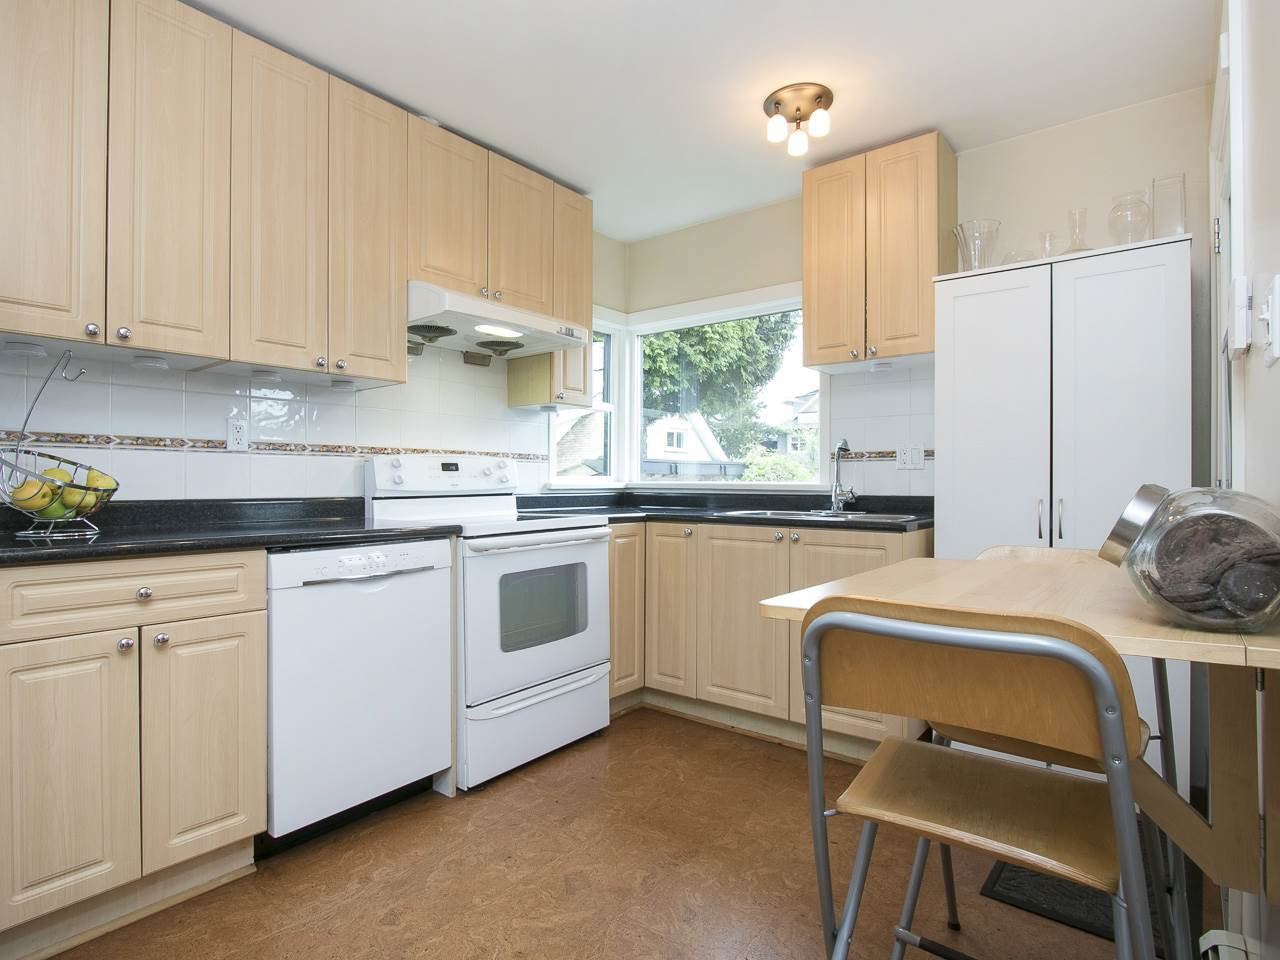 Photo 8: Photos: 731 W KING EDWARD AVENUE in Vancouver: Cambie House for sale (Vancouver West)  : MLS®# R2204992